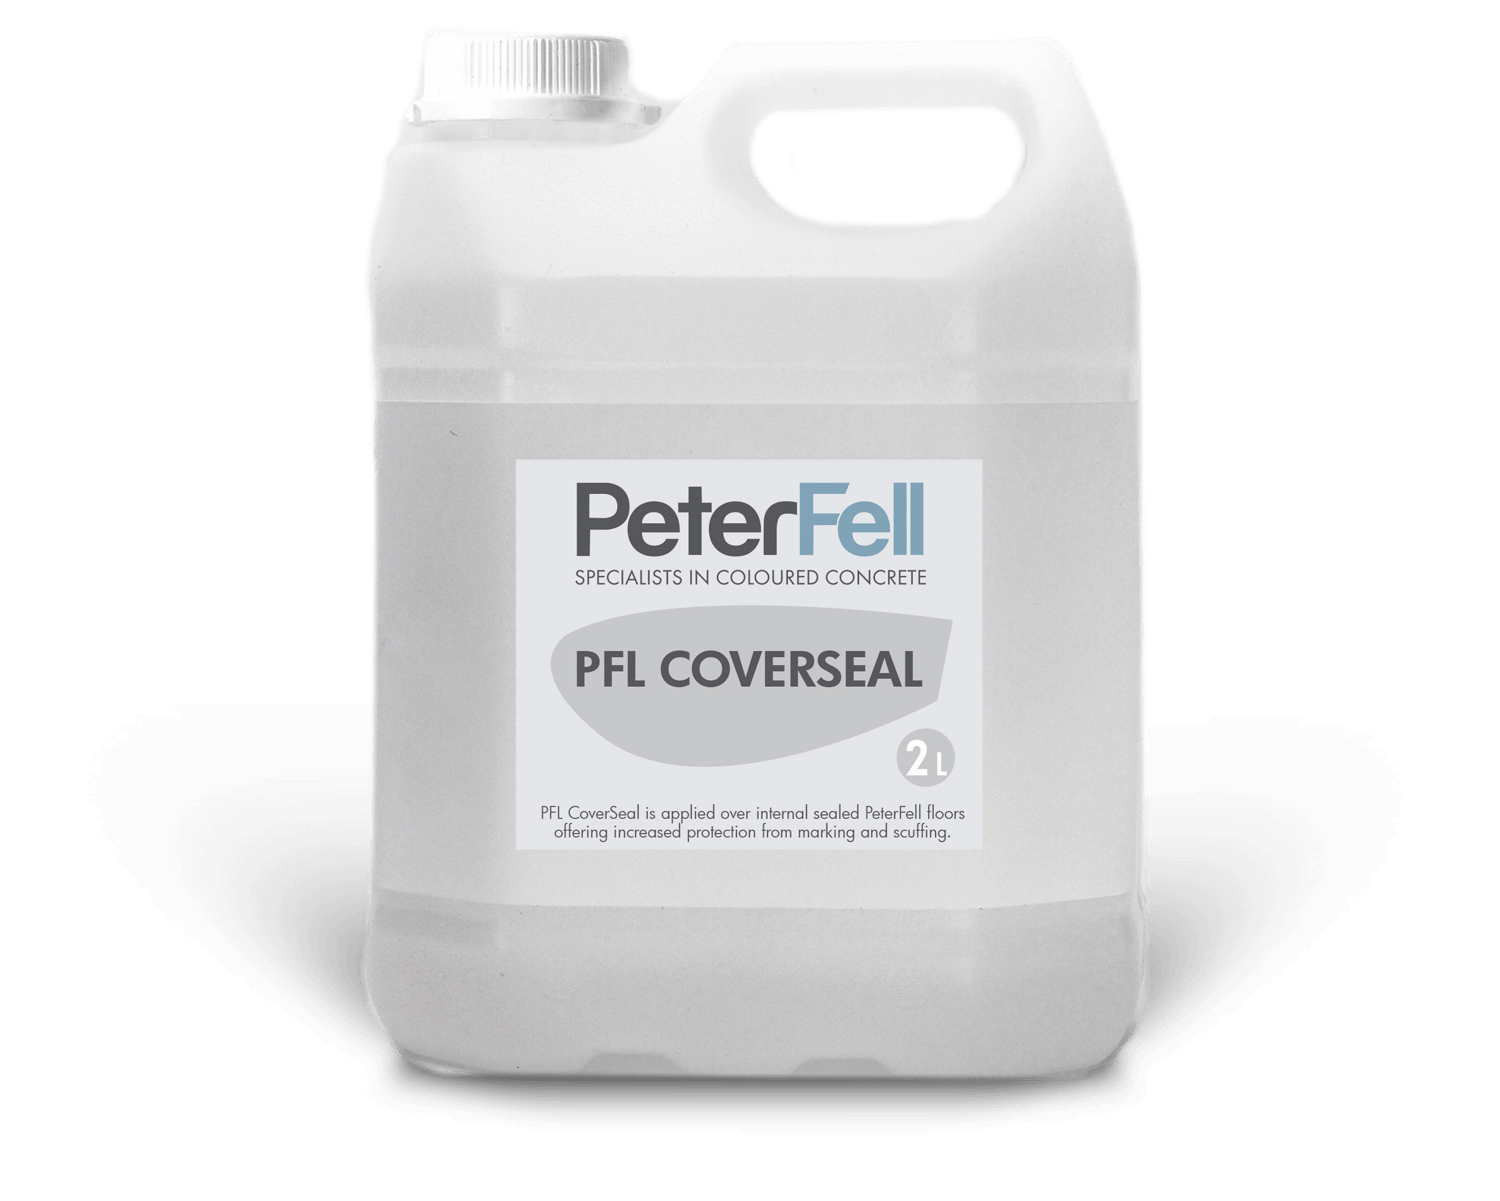 PFL coverseal for concrete 2 litre bottle